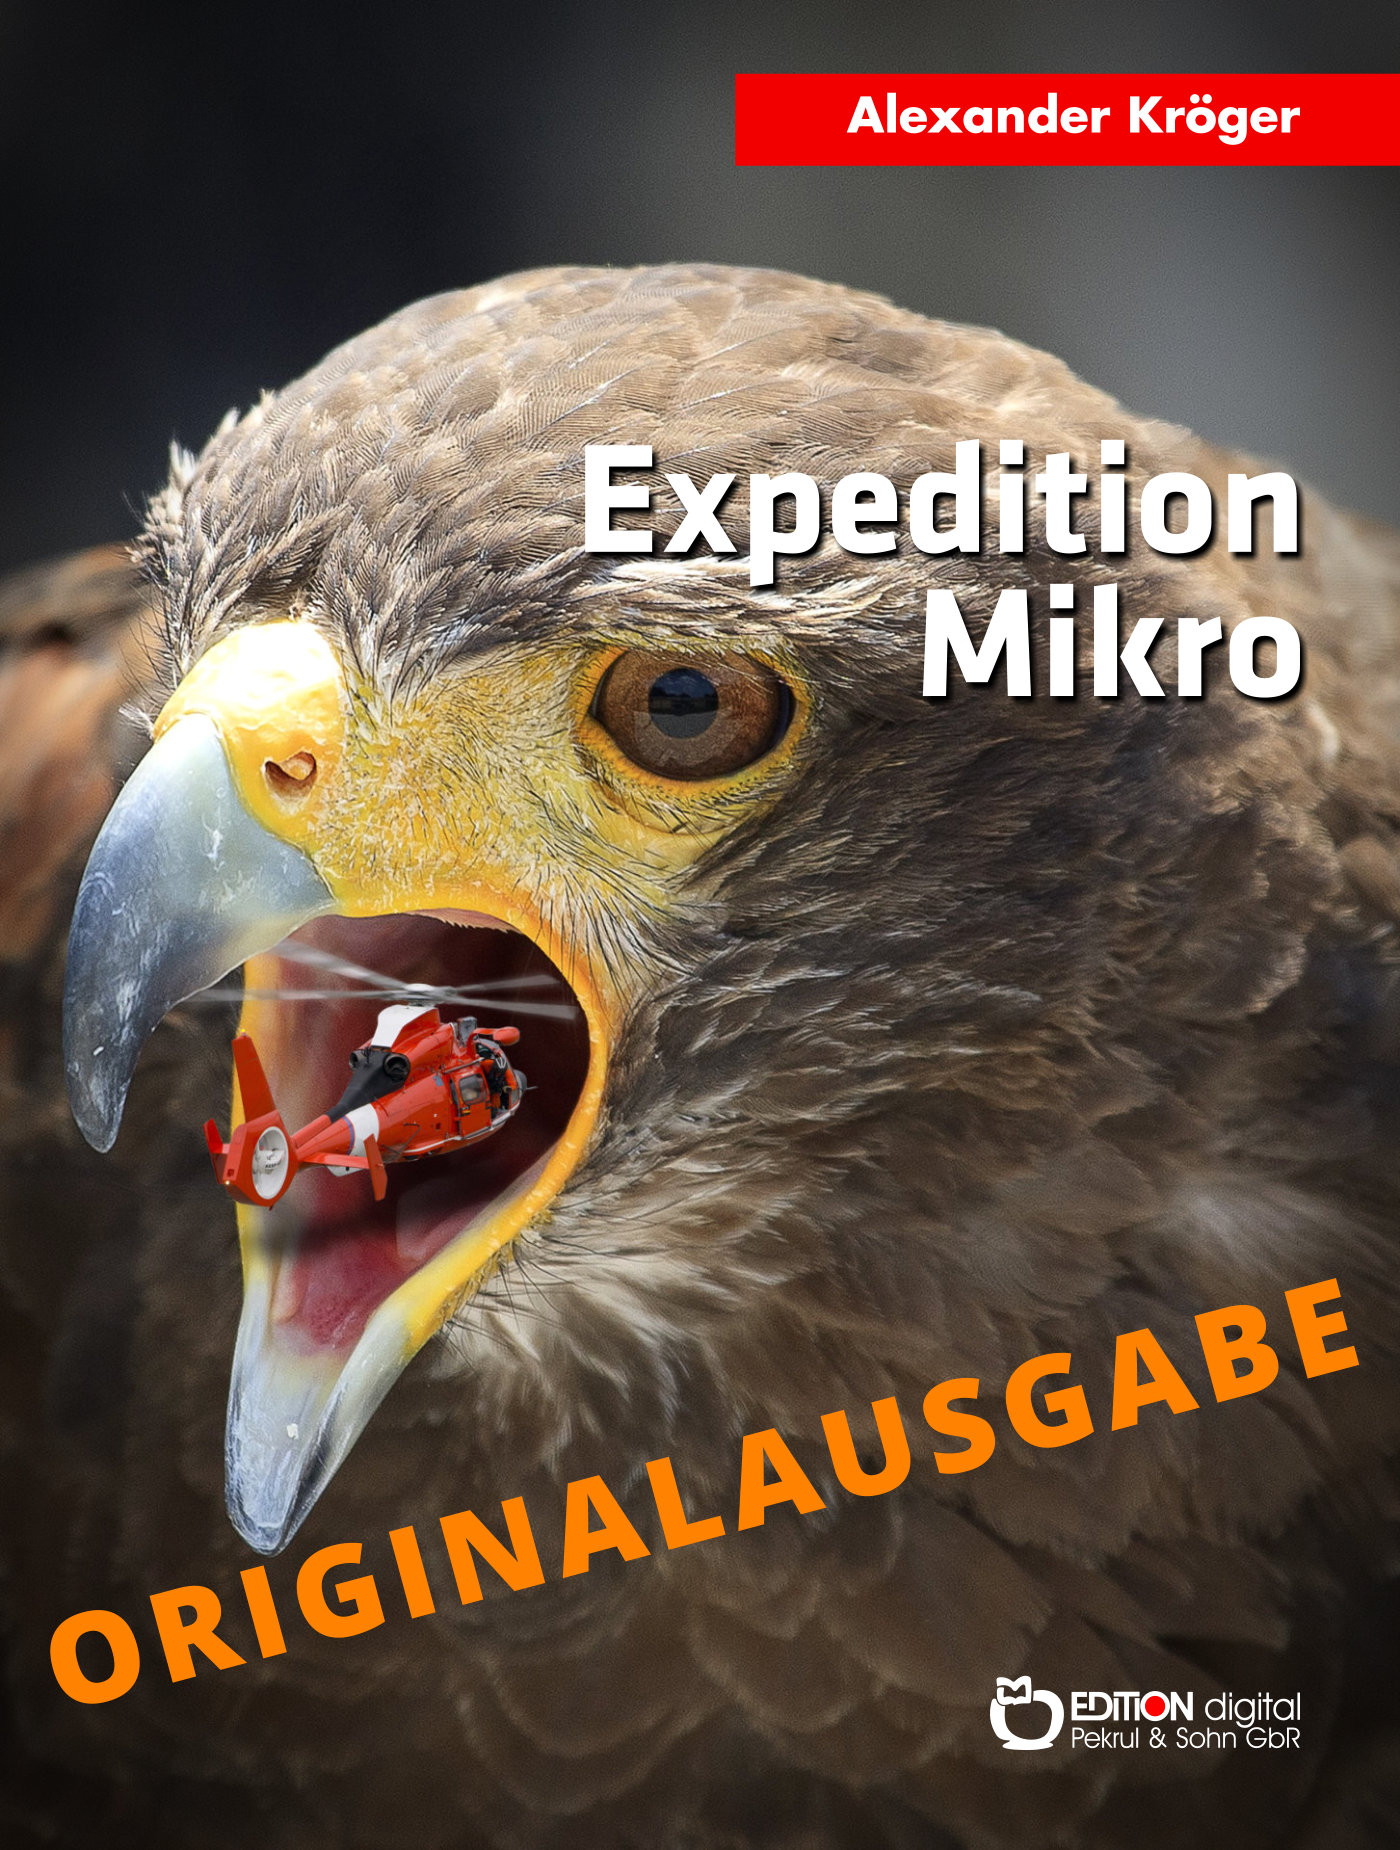 Expedition Mikro - Originalausgabe. Wissenschaftlich-phantastischer Roman von Alexander Kröger